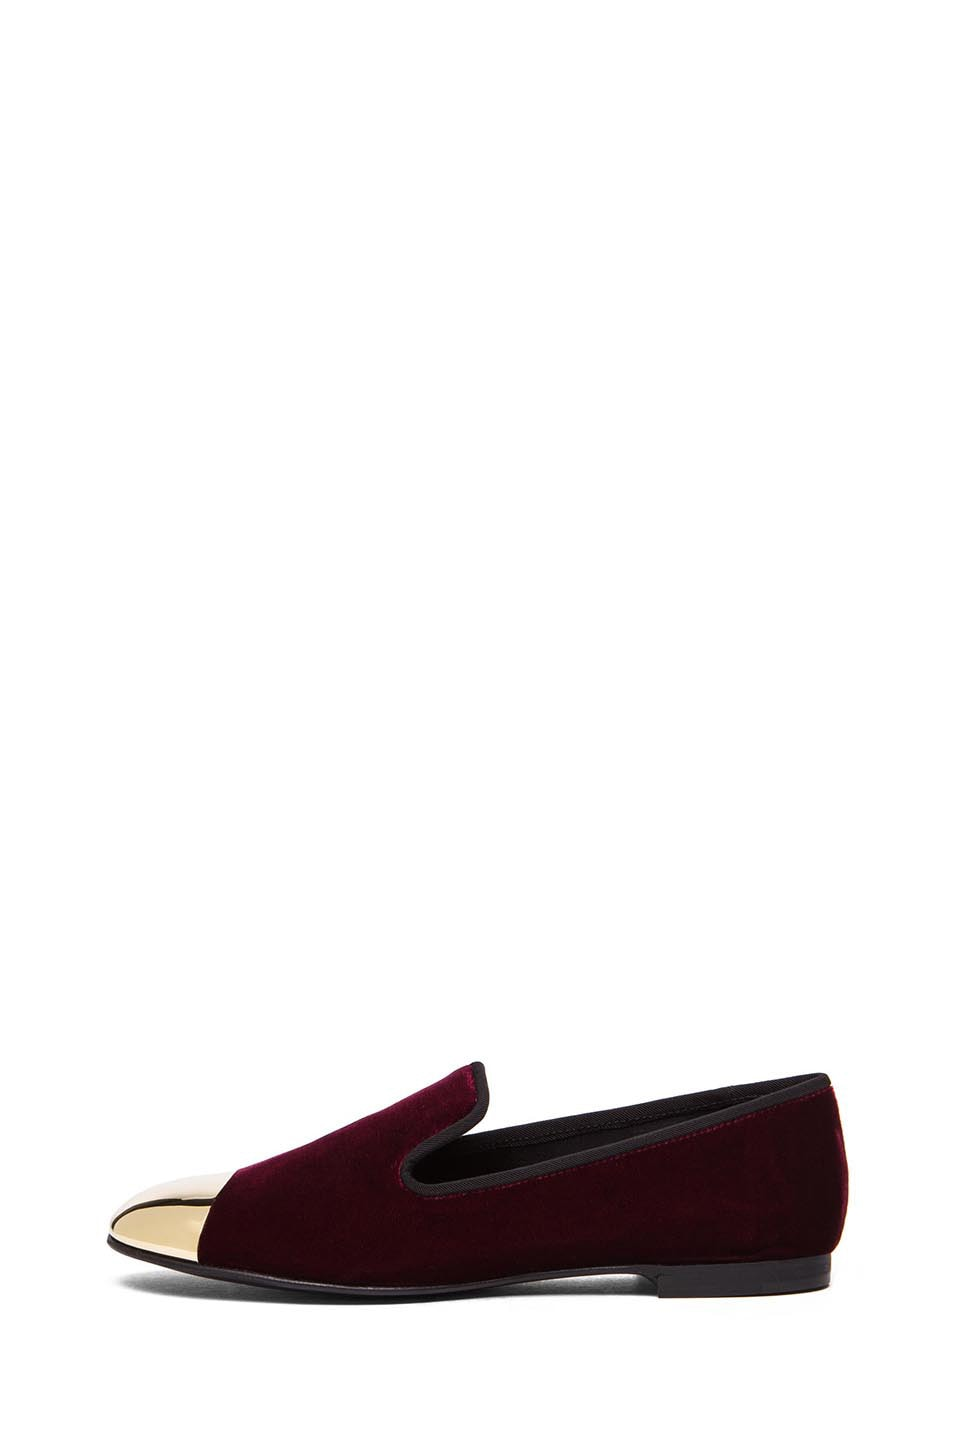 Image 1 of Giuseppe Zanotti Velvet Gold Tipped Flat in Burgundy Velvet